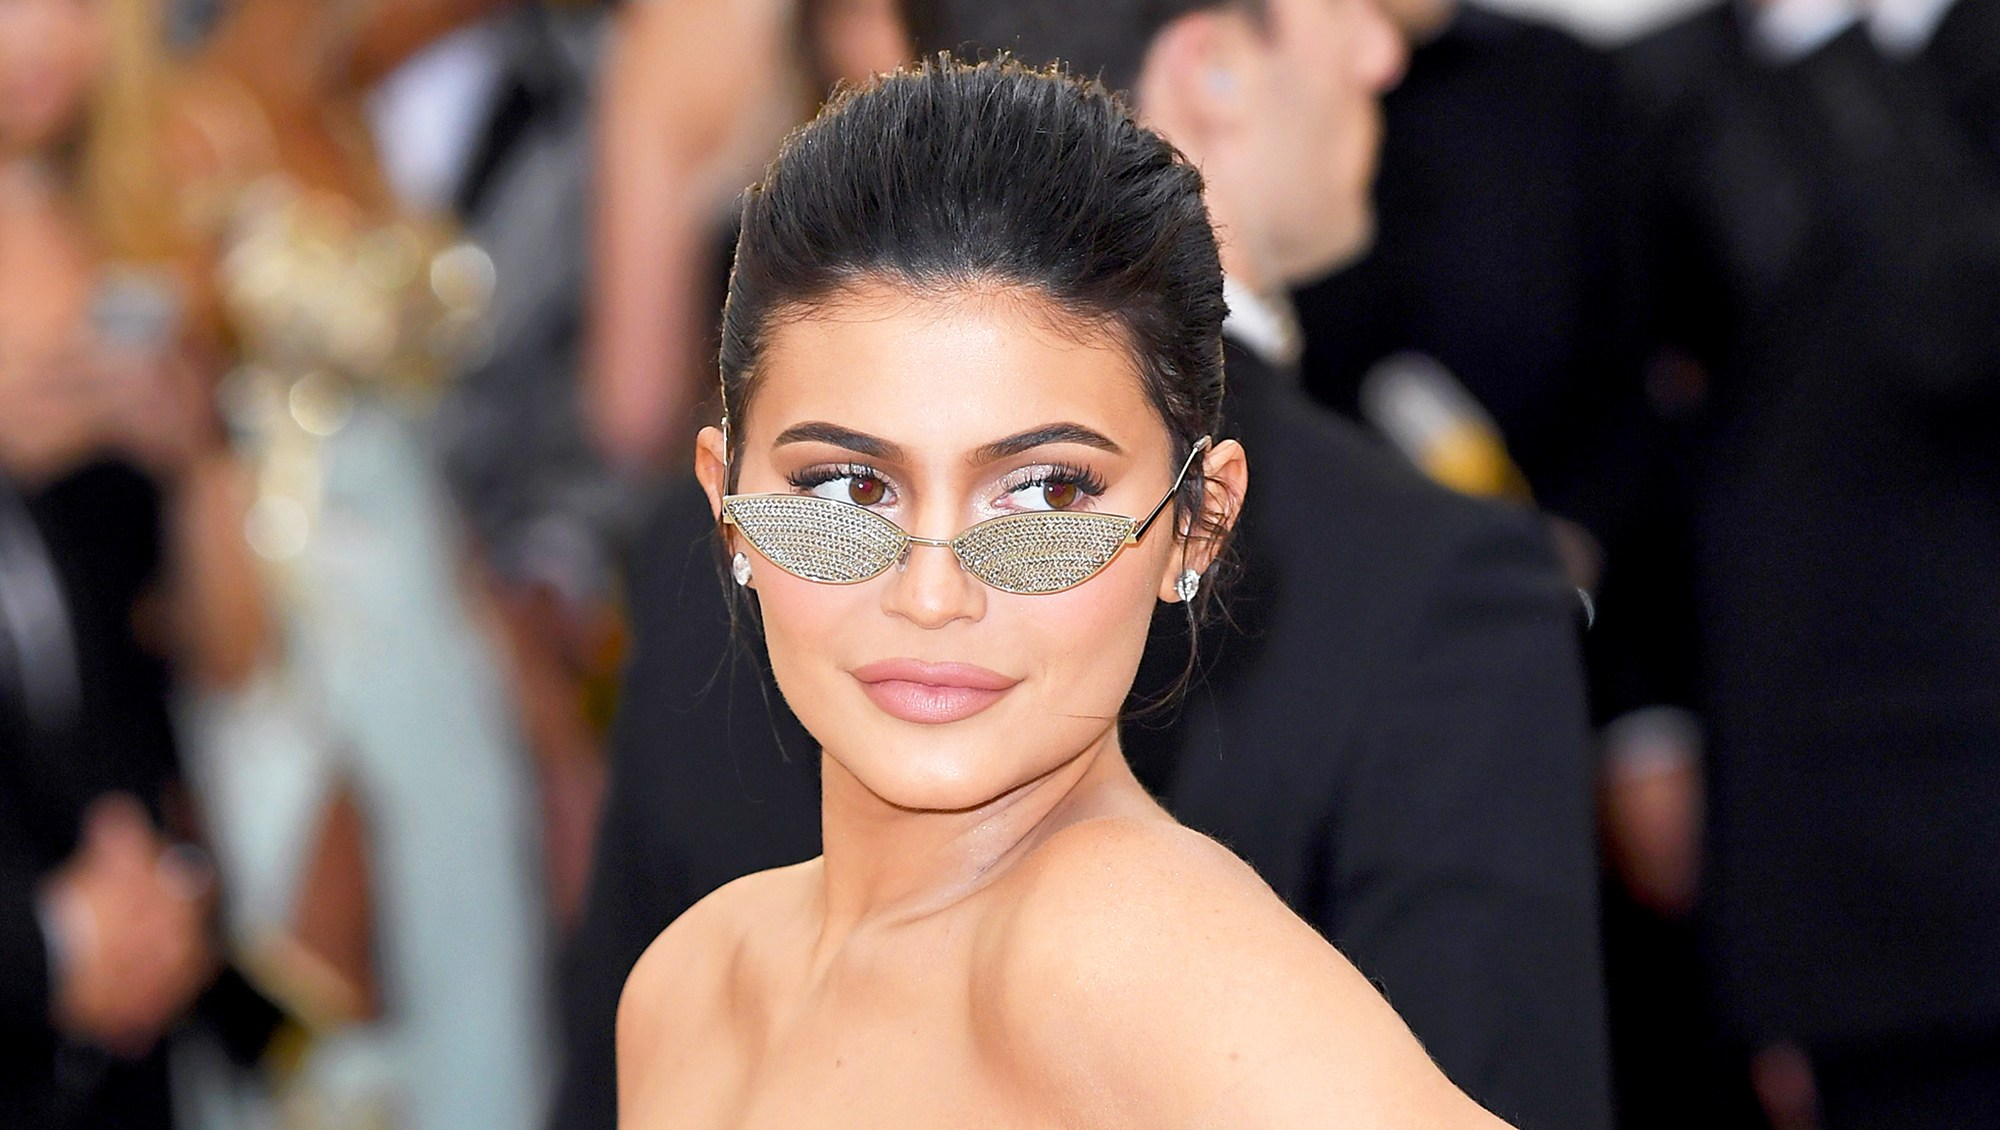 Kylie Jenner attends the Heavenly Bodies: Fashion & The Catholic Imagination Costume Institute Gala at The Metropolitan Museum of Art on May 7, 2018 in New York City.